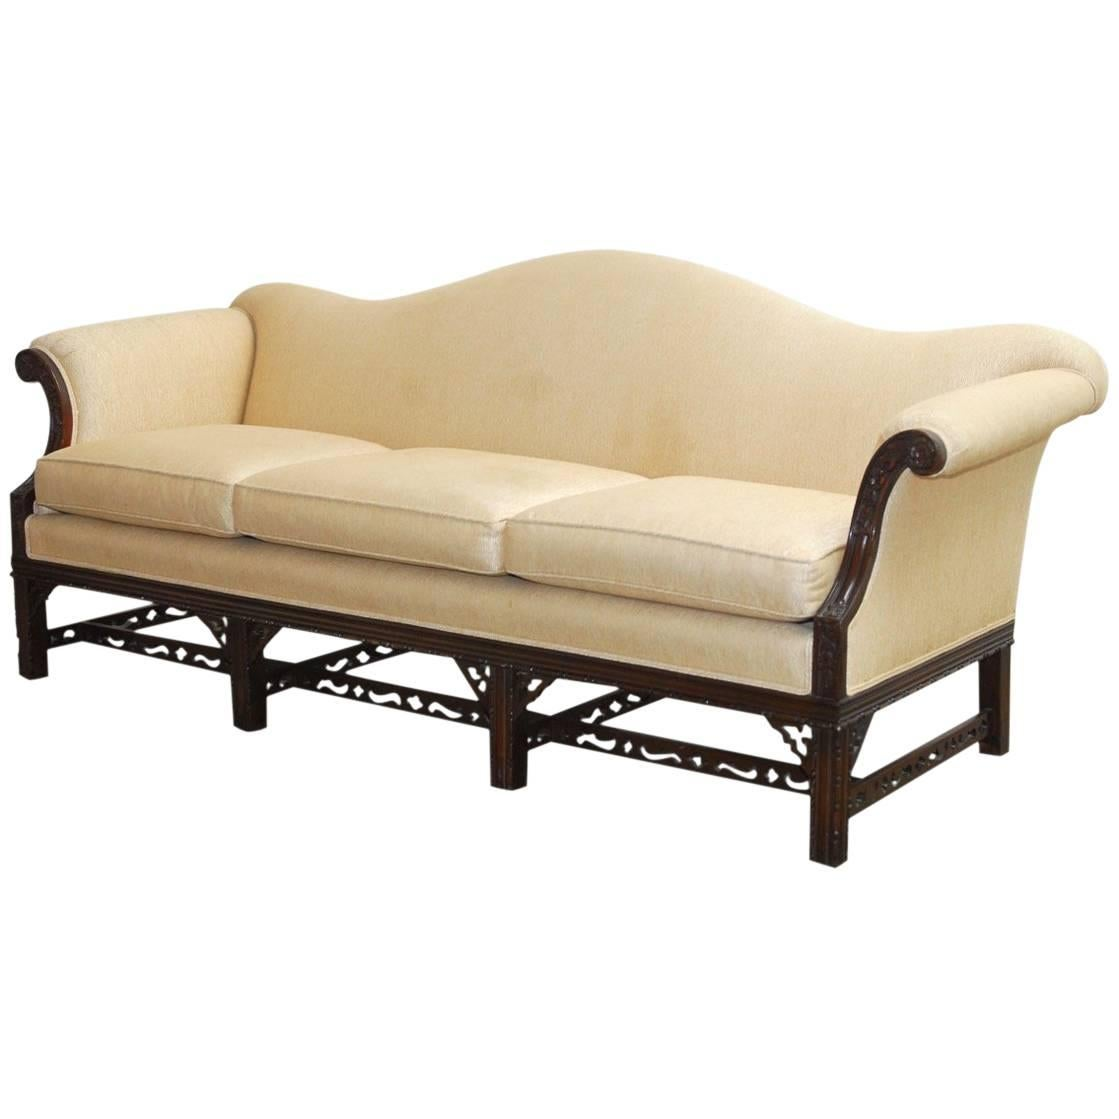 Chinese Chippendale Style Carved Mahogany Camelback Sofa For Sale Camelback Sofas For Sale L81